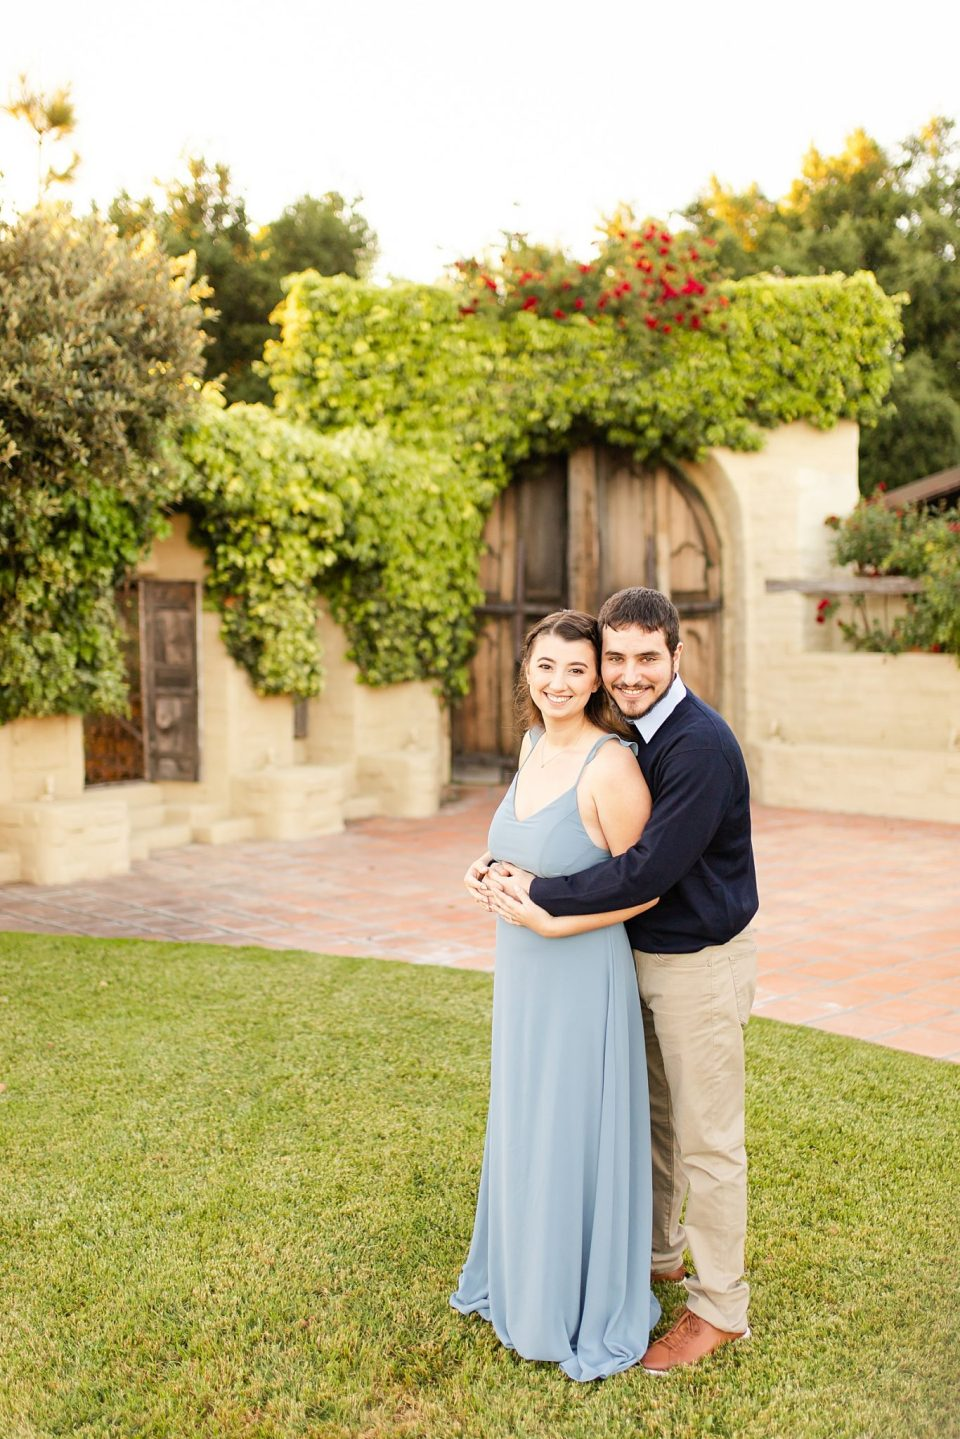 The couple smiling at the camera with the antique doors behind them during their Whispering Rose Ranch Engagement Session